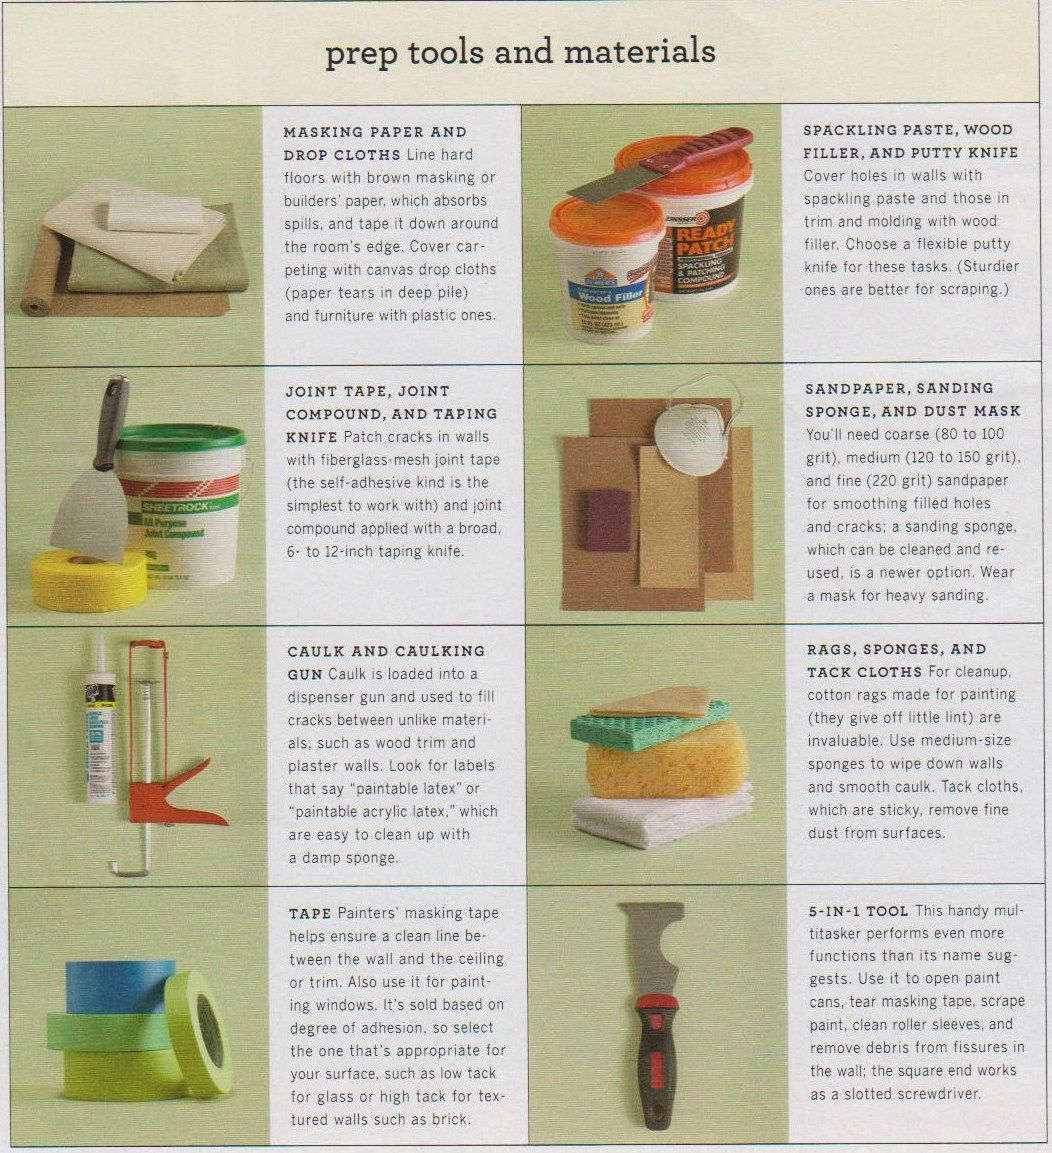 Painting Prep Tools And Materials With Images Wood Putty Wood Molding Spackling